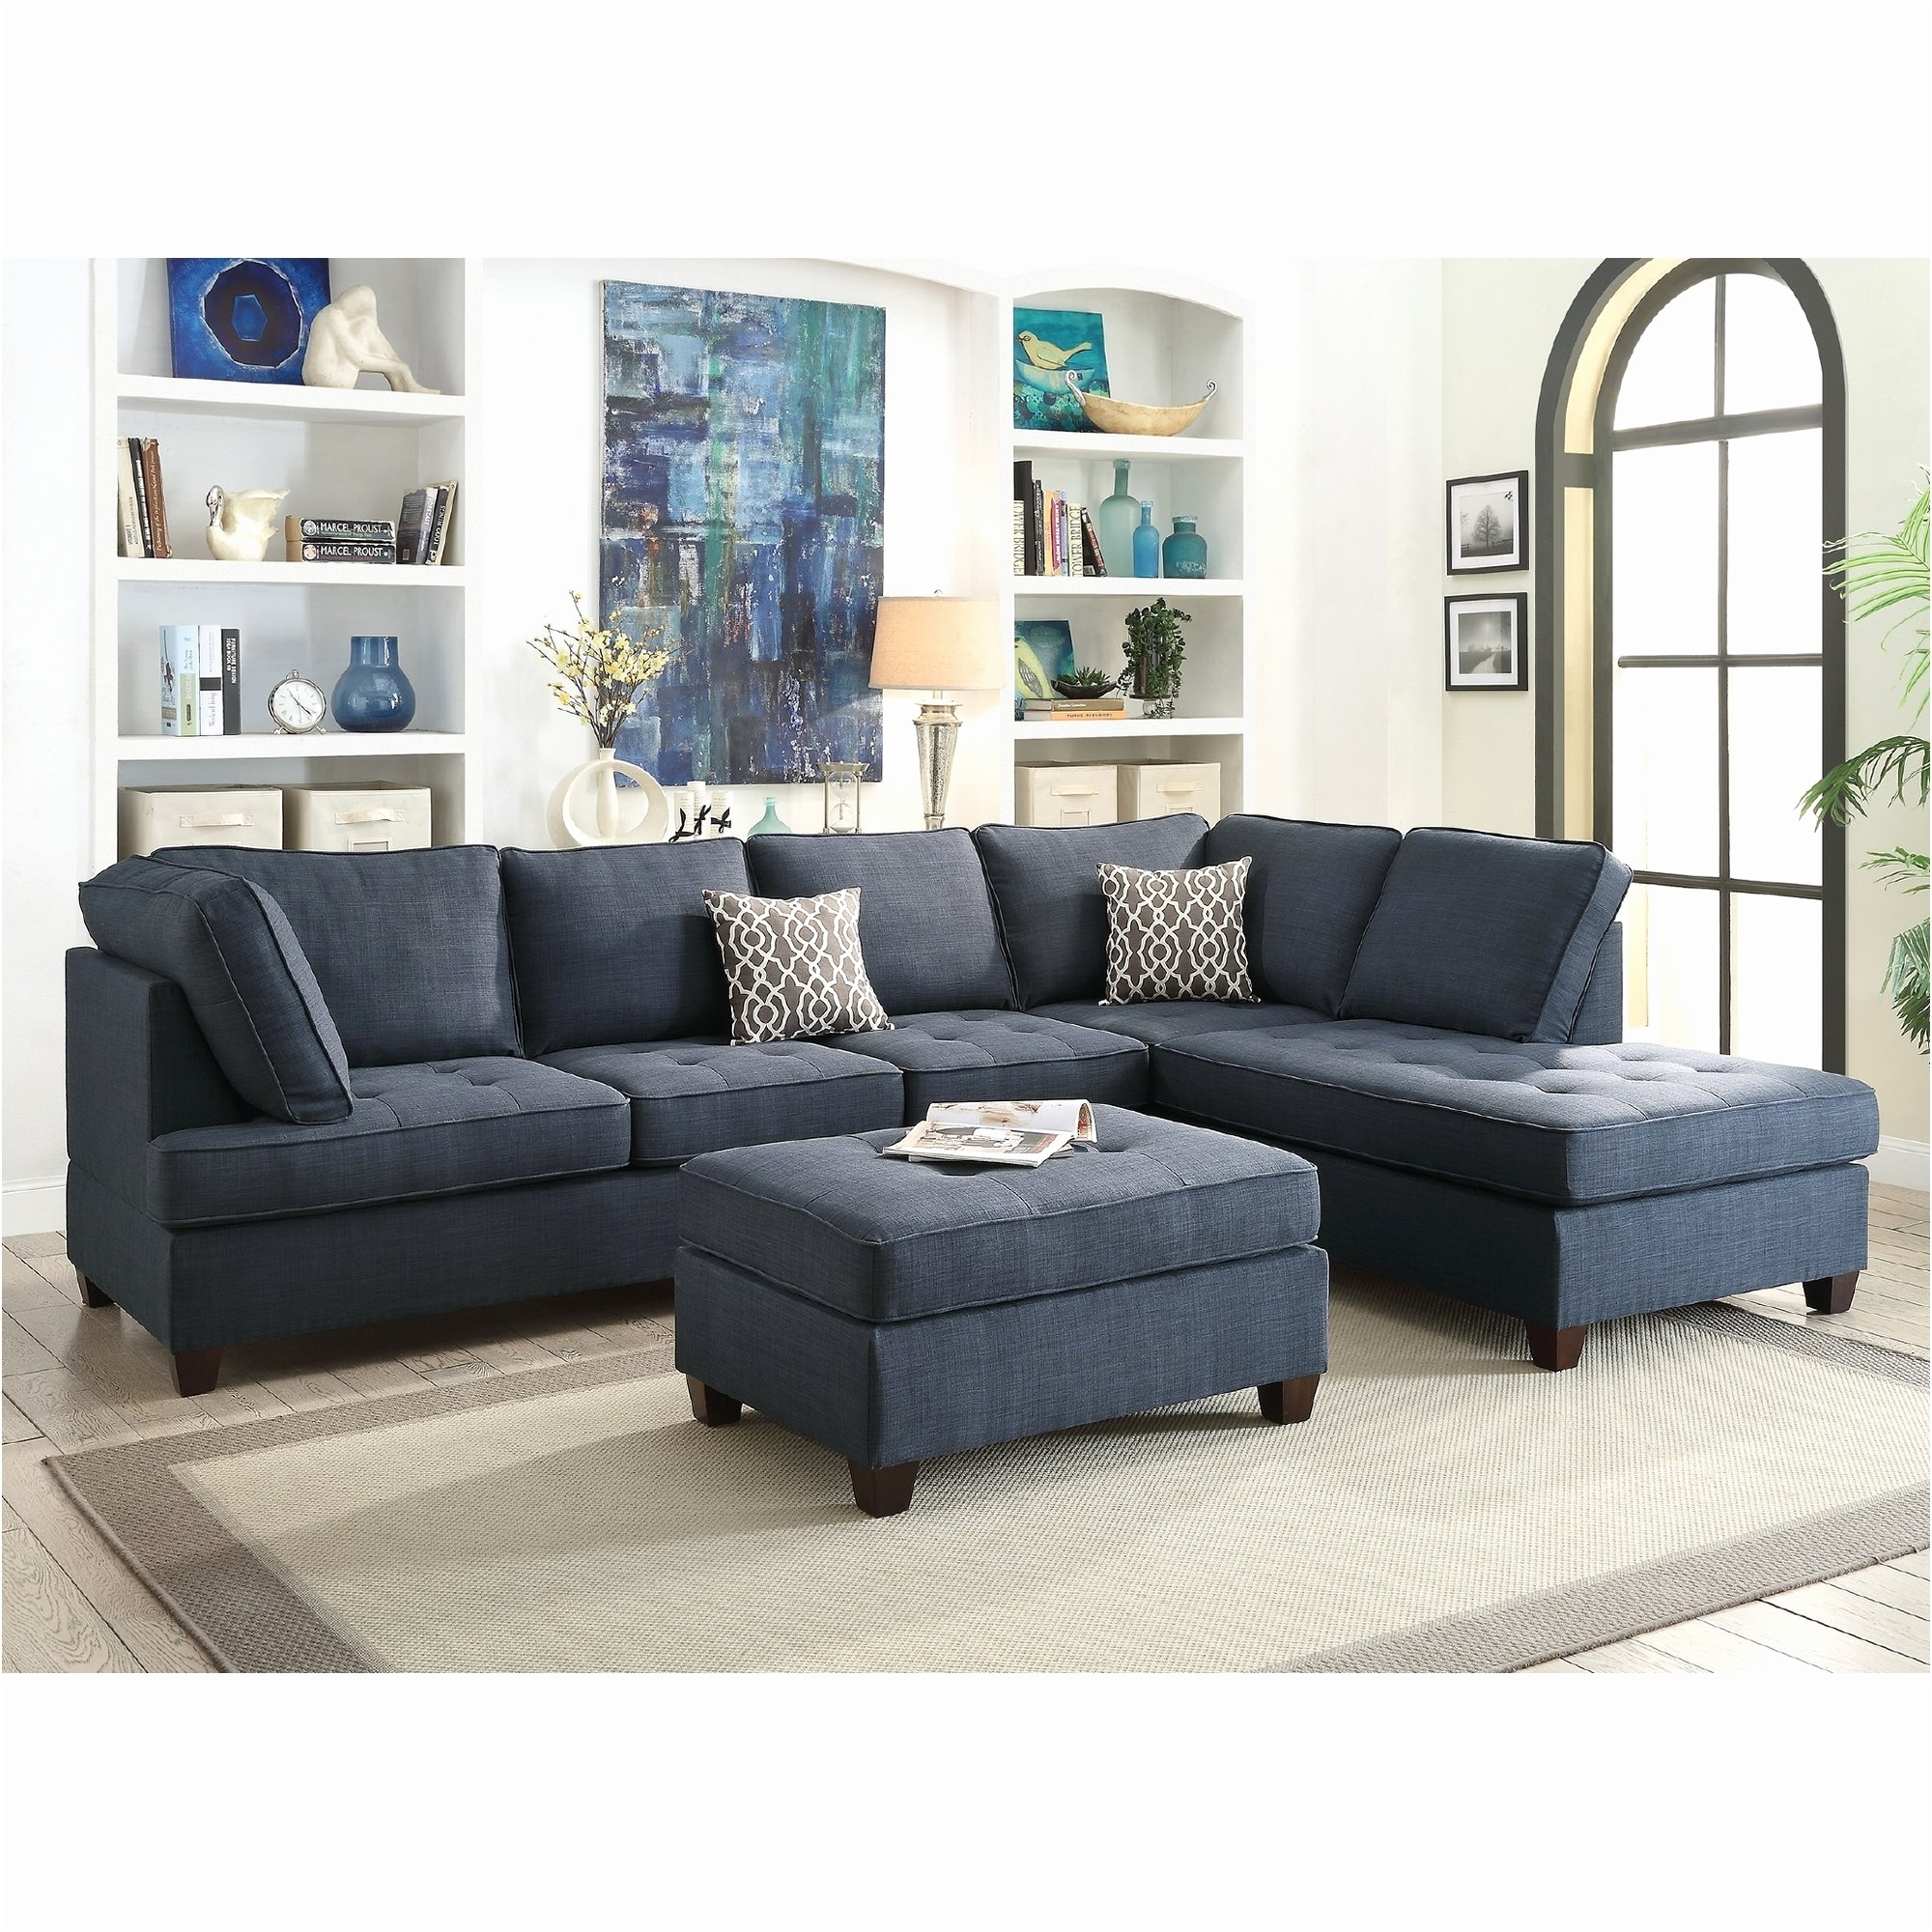 Catosfera With Regard To Most Recent Jacksonville Fl Sectional Sofas (View 1 of 20)